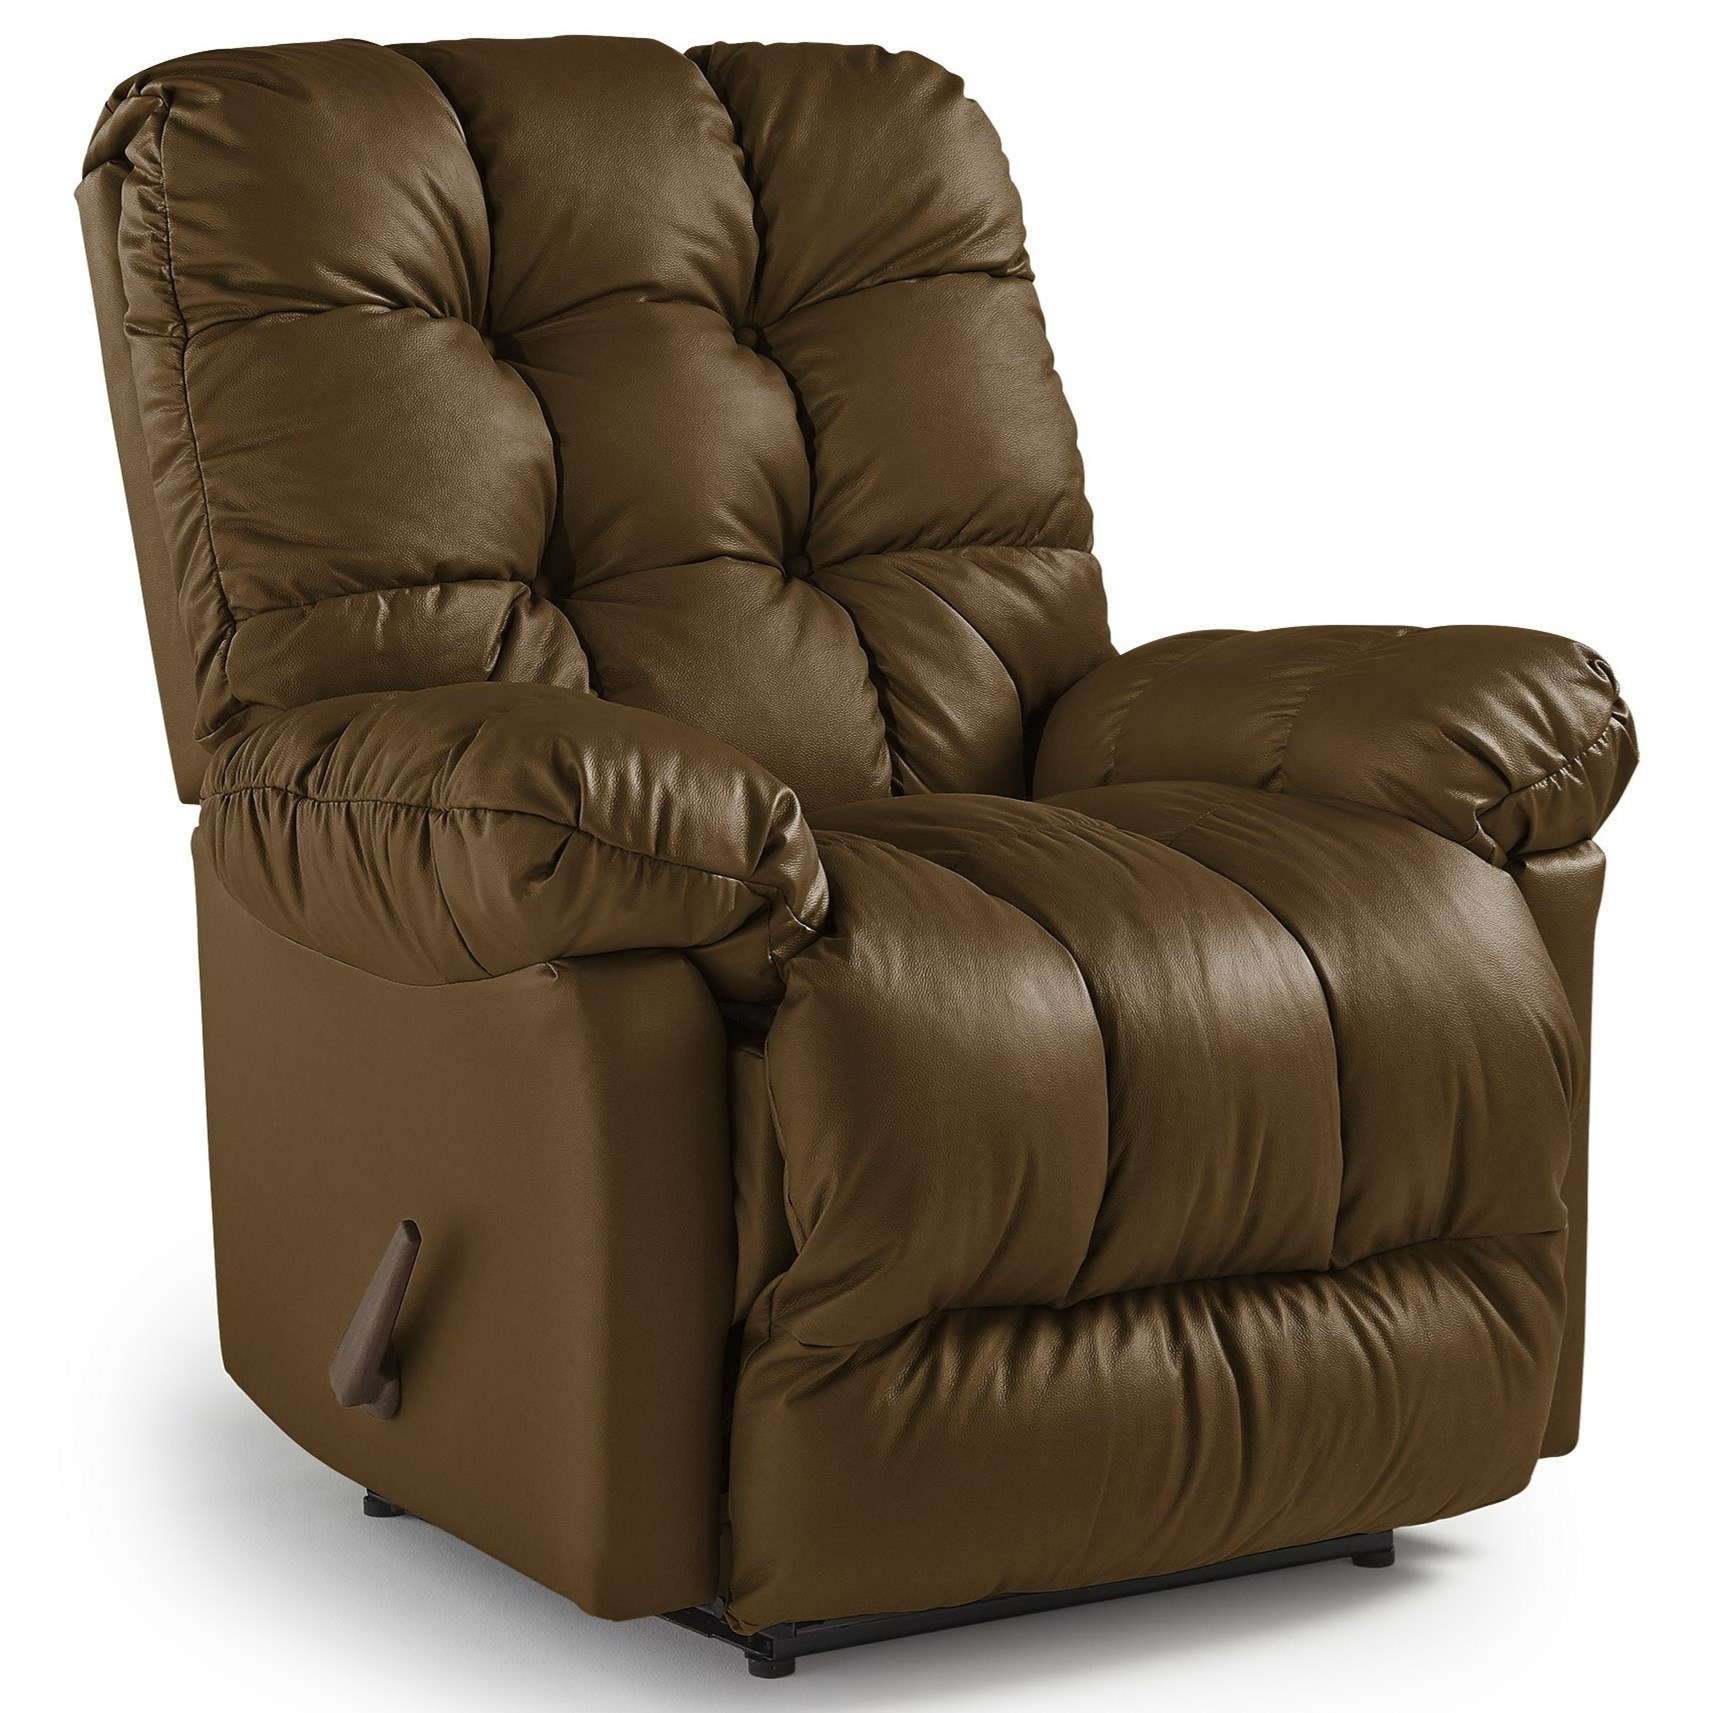 Best Home Furnishings Medium Recliners Brosmer Wallhugger